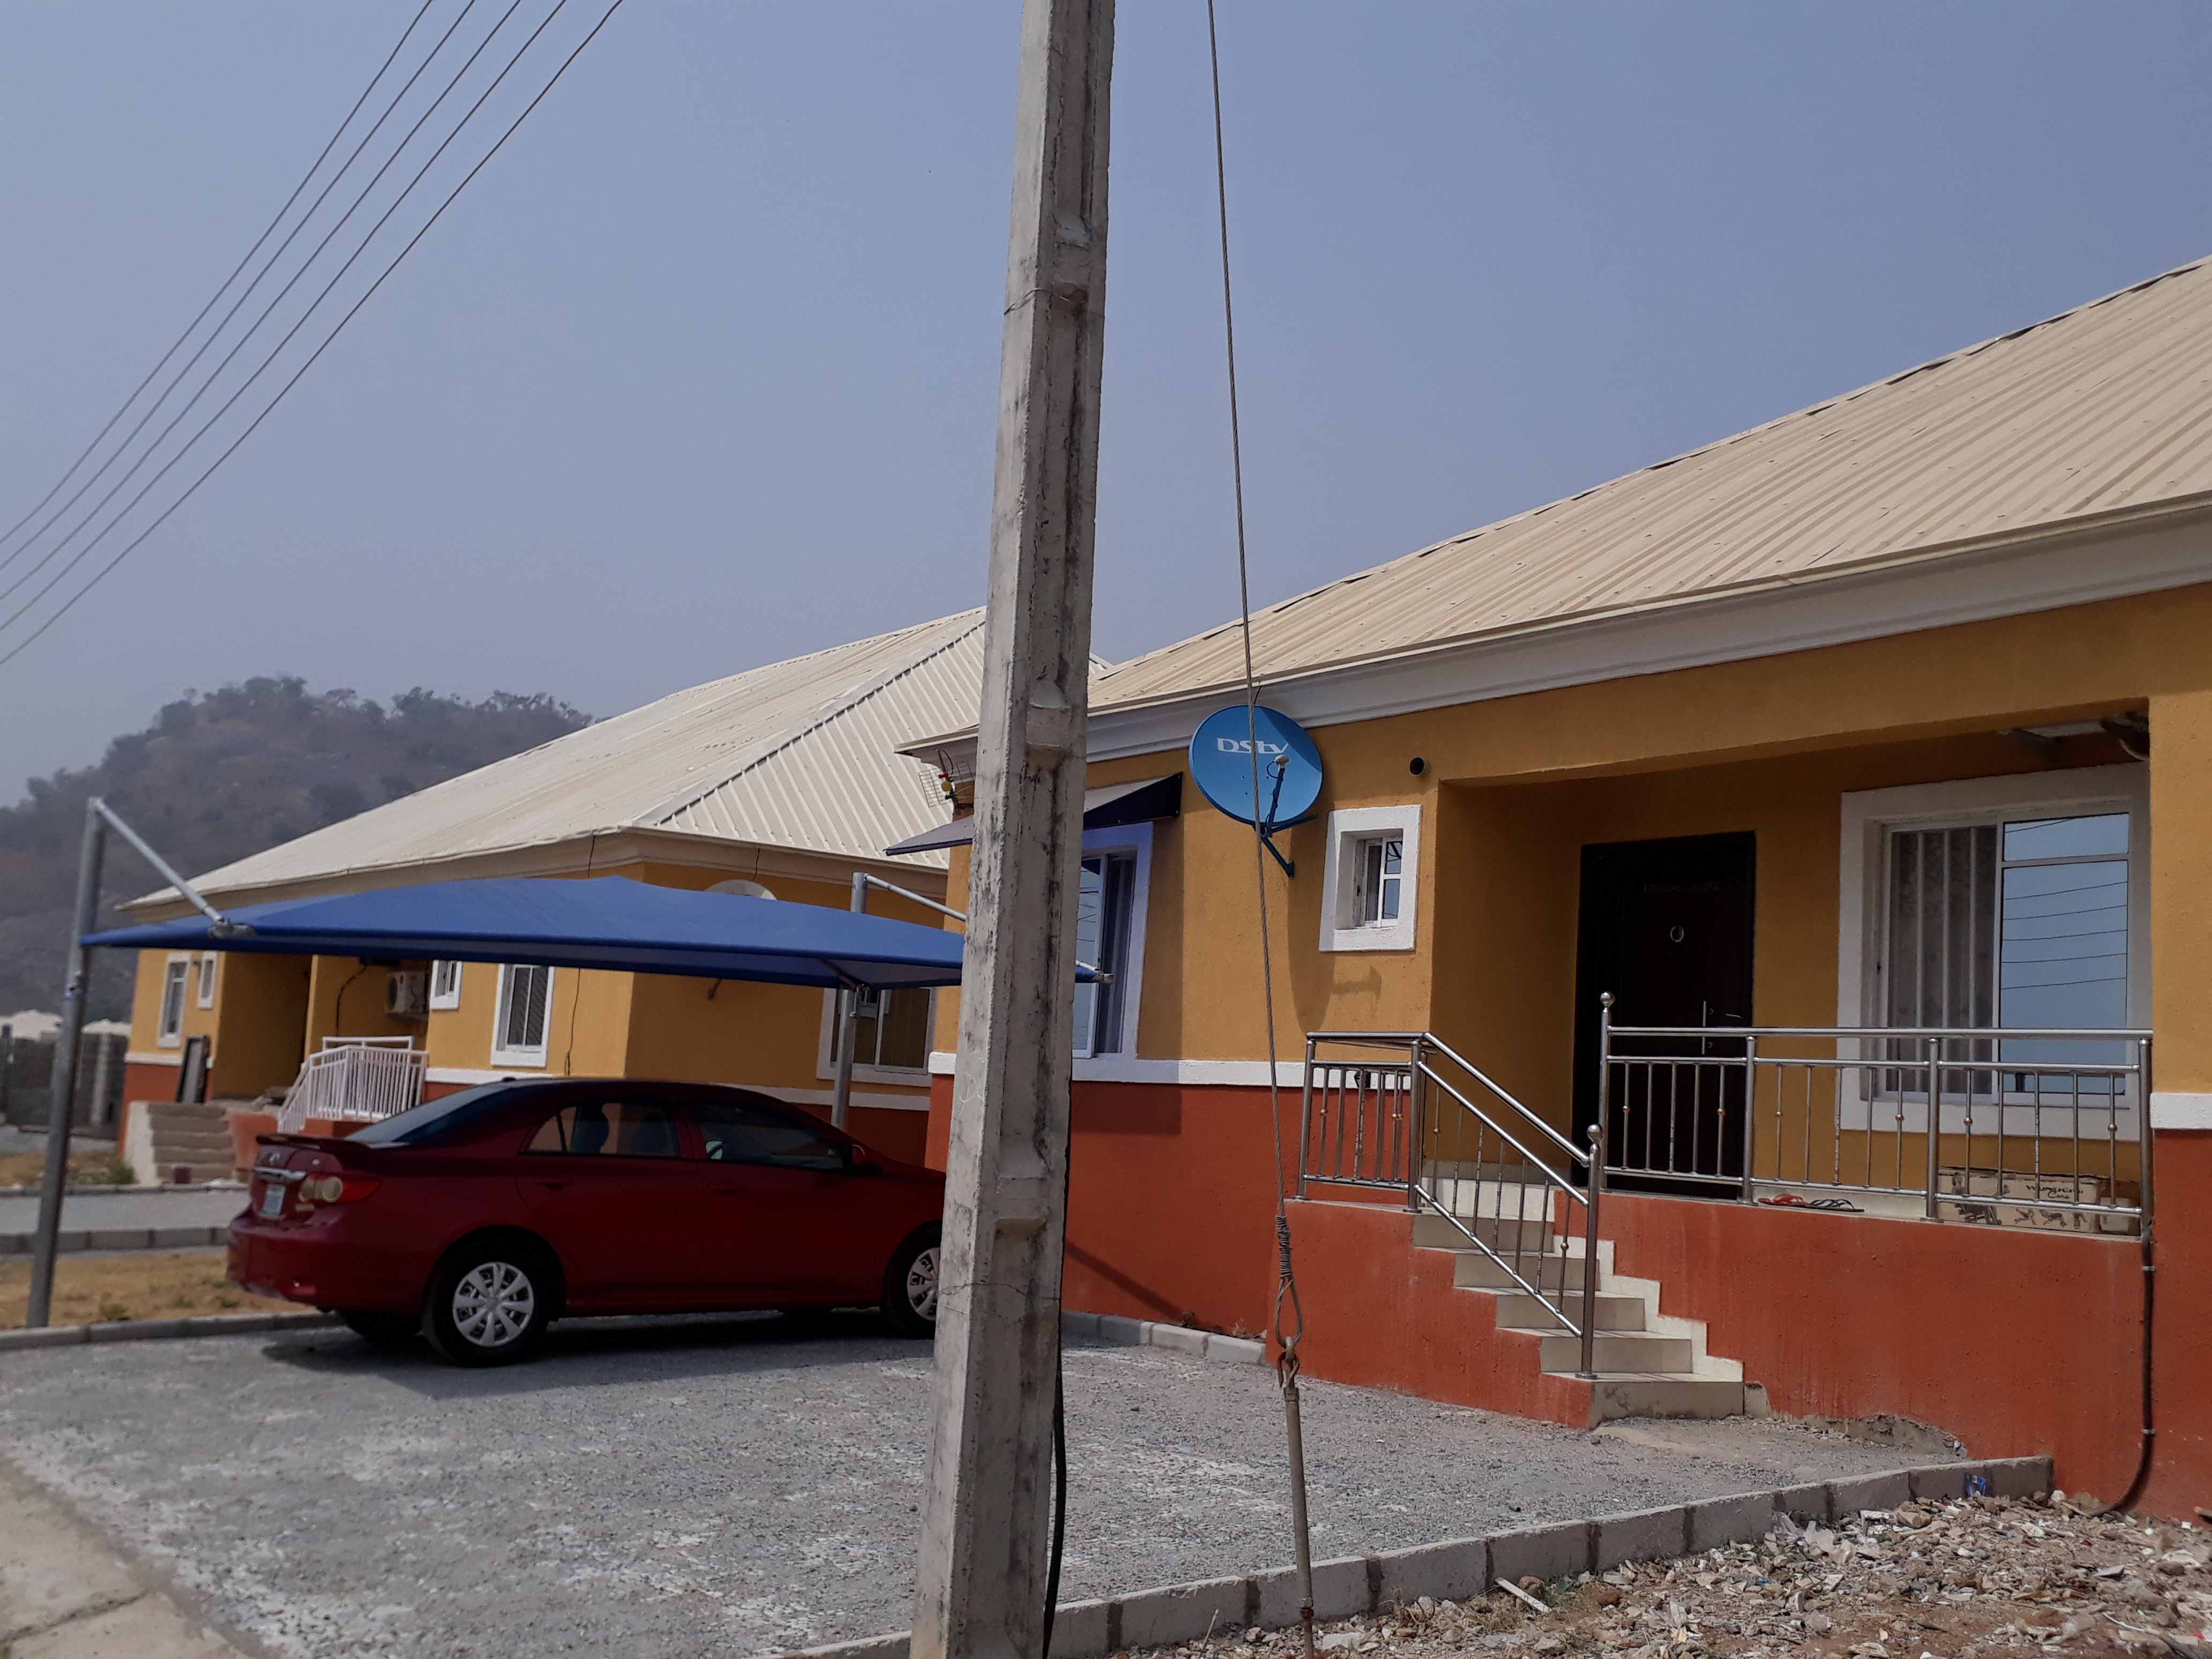 OCCUPIED 3-BEDROOM BUNGALOWS